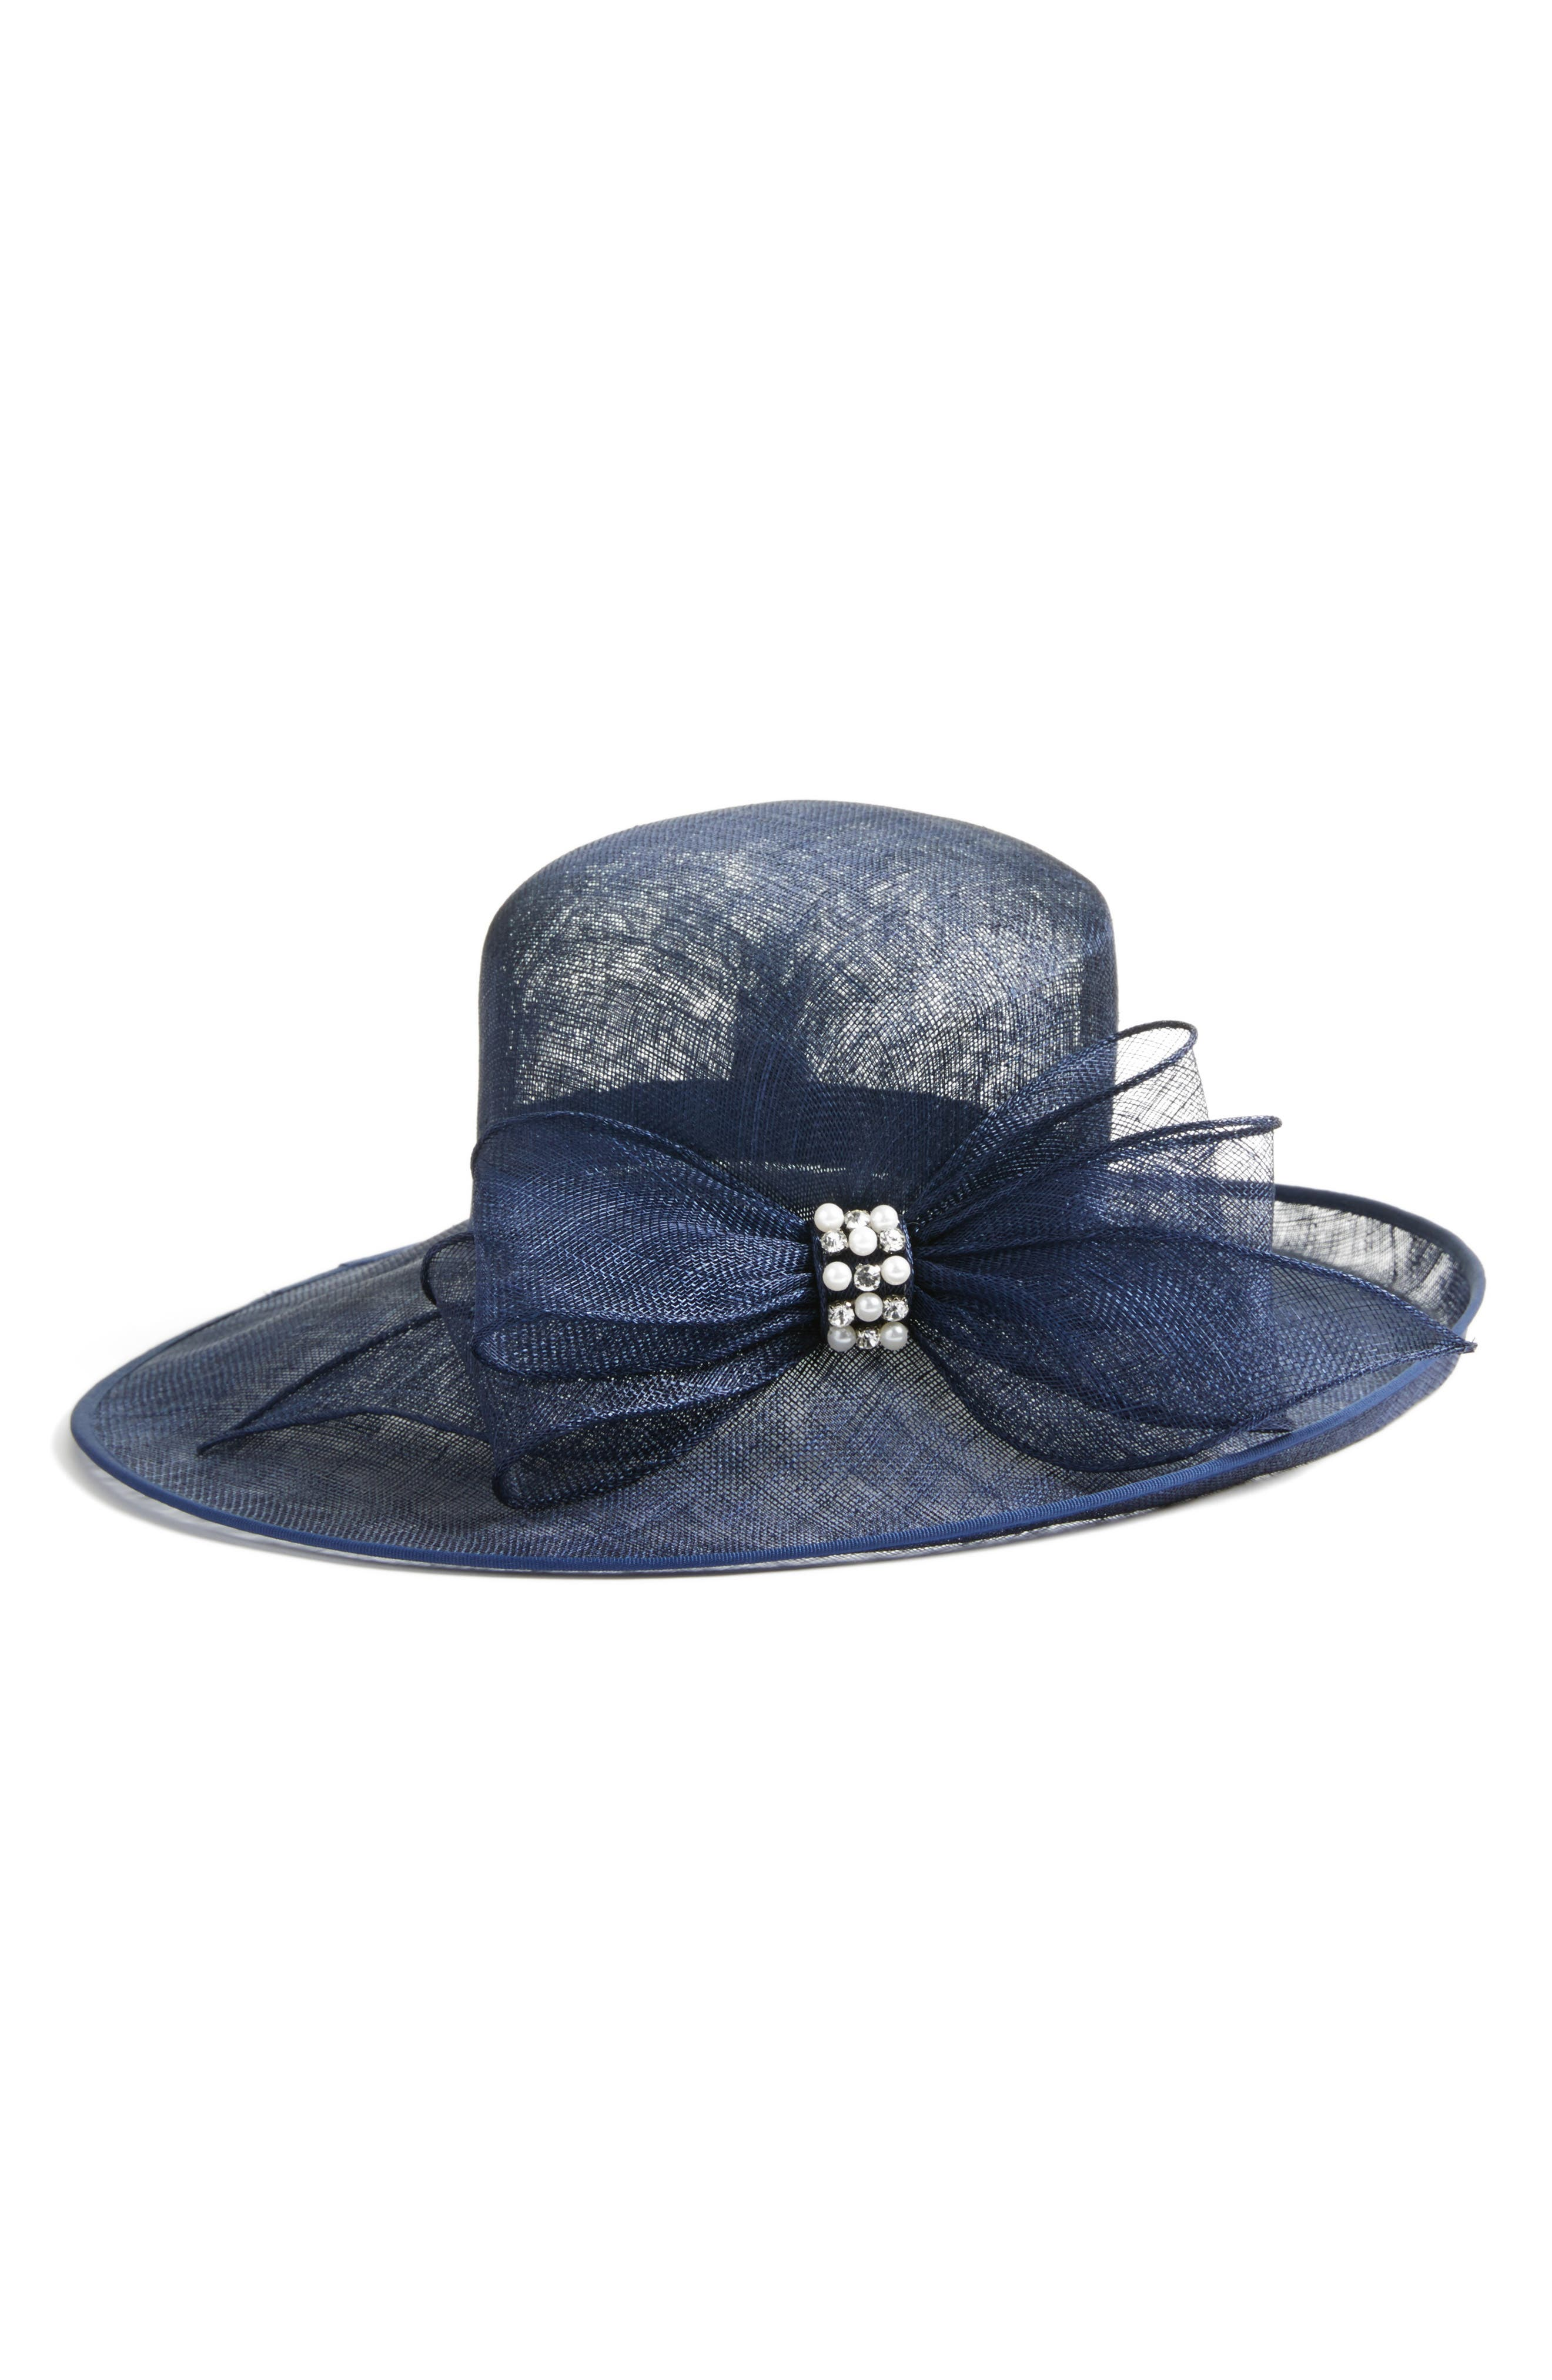 Jeweled Bow Hat,                         Main,                         color, Navy